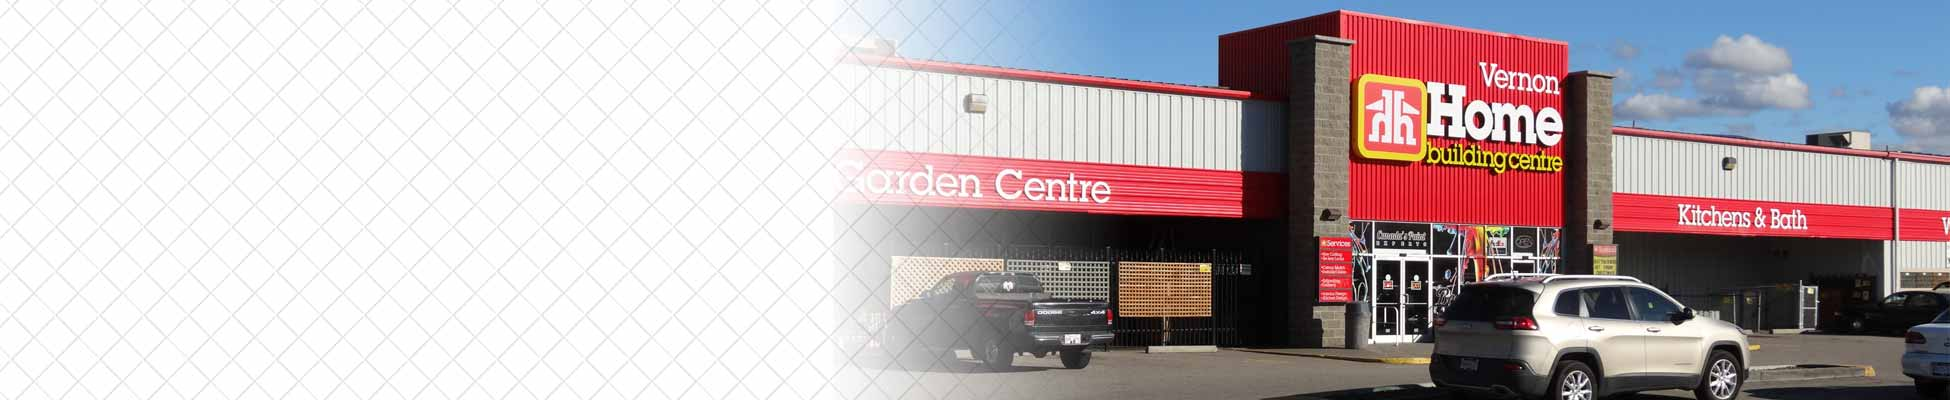 Home Building Centre - Vernon - Store Front and Gradient Background